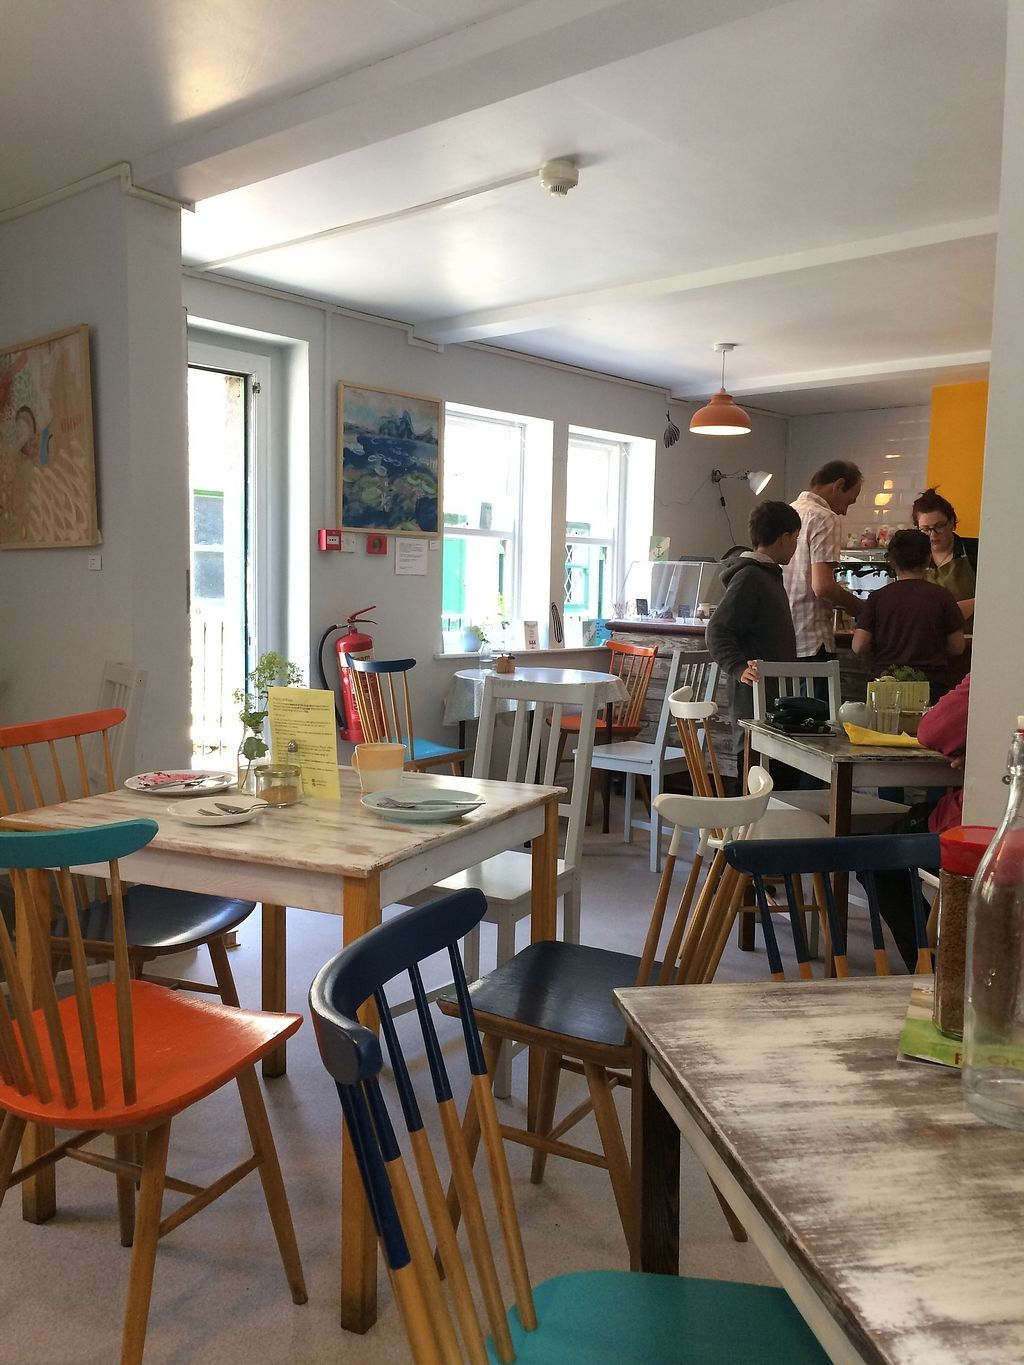 """Photo of Plenty at The Square  by <a href=""""/members/profile/Hoggy"""">Hoggy</a> <br/>Inside the café <br/> July 23, 2017  - <a href='/contact/abuse/image/95319/283776'>Report</a>"""